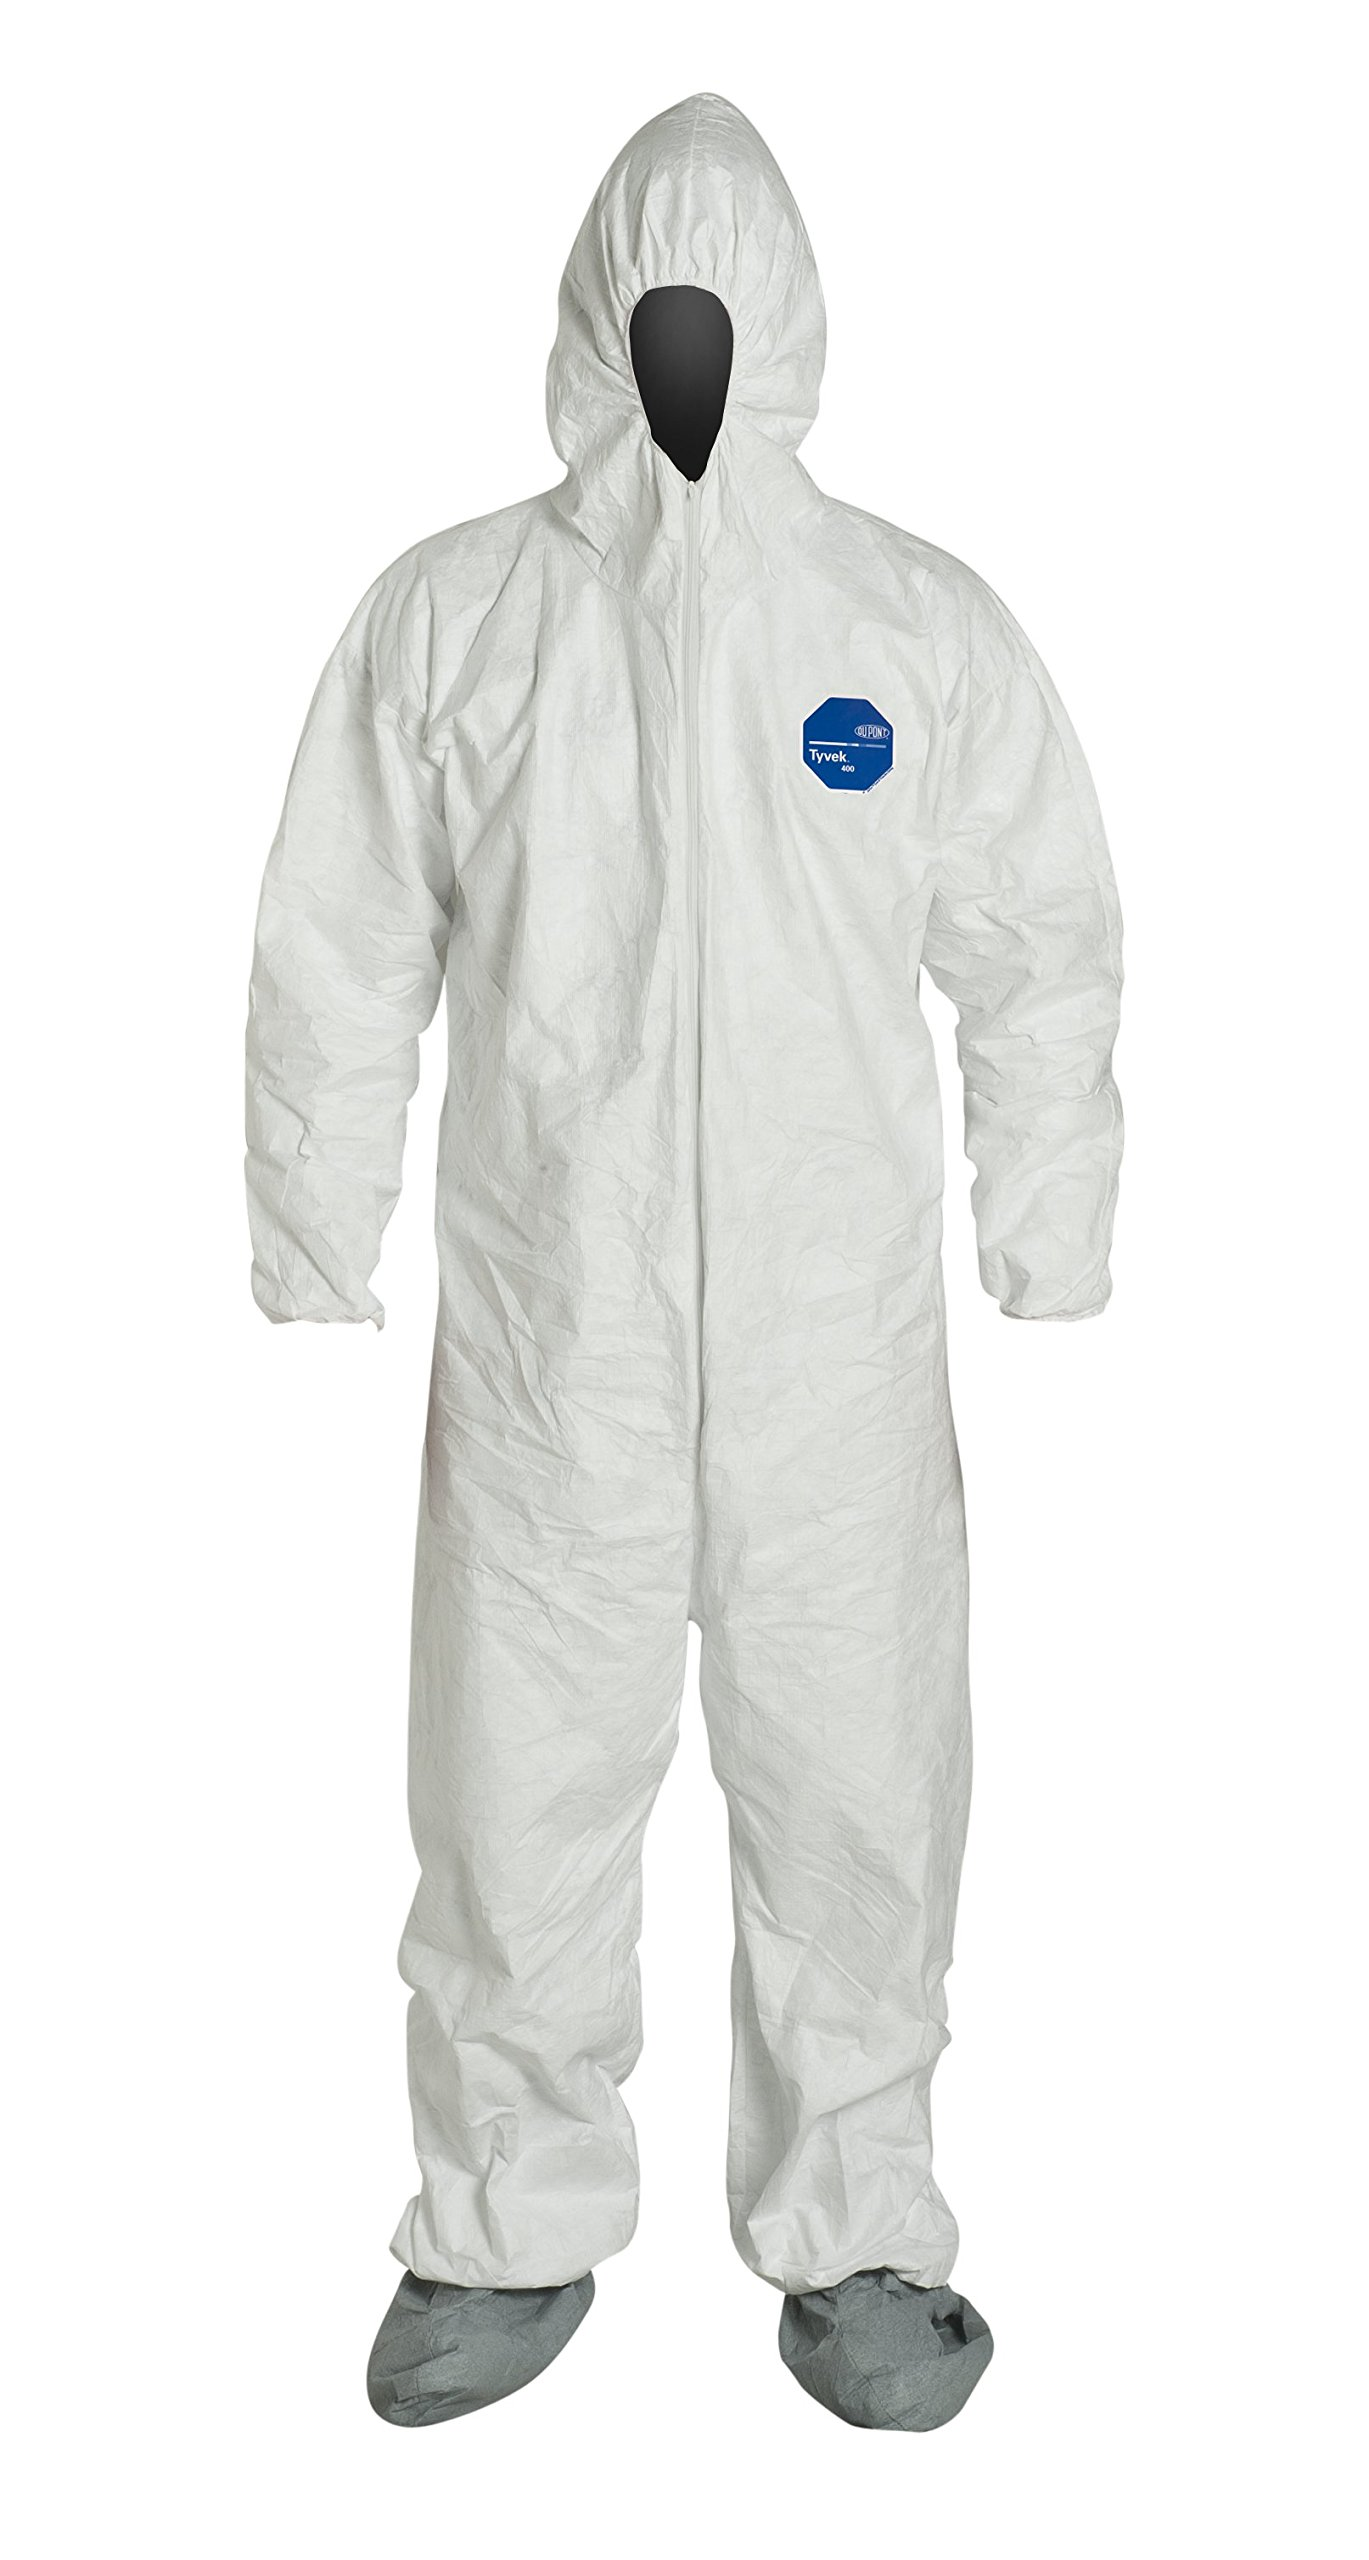 DuPont Tyvek 400 TY122S Protective Coverall with Hood and Boots, Disposable, Elastic Cuff, White, X-Large (Pack of 25)